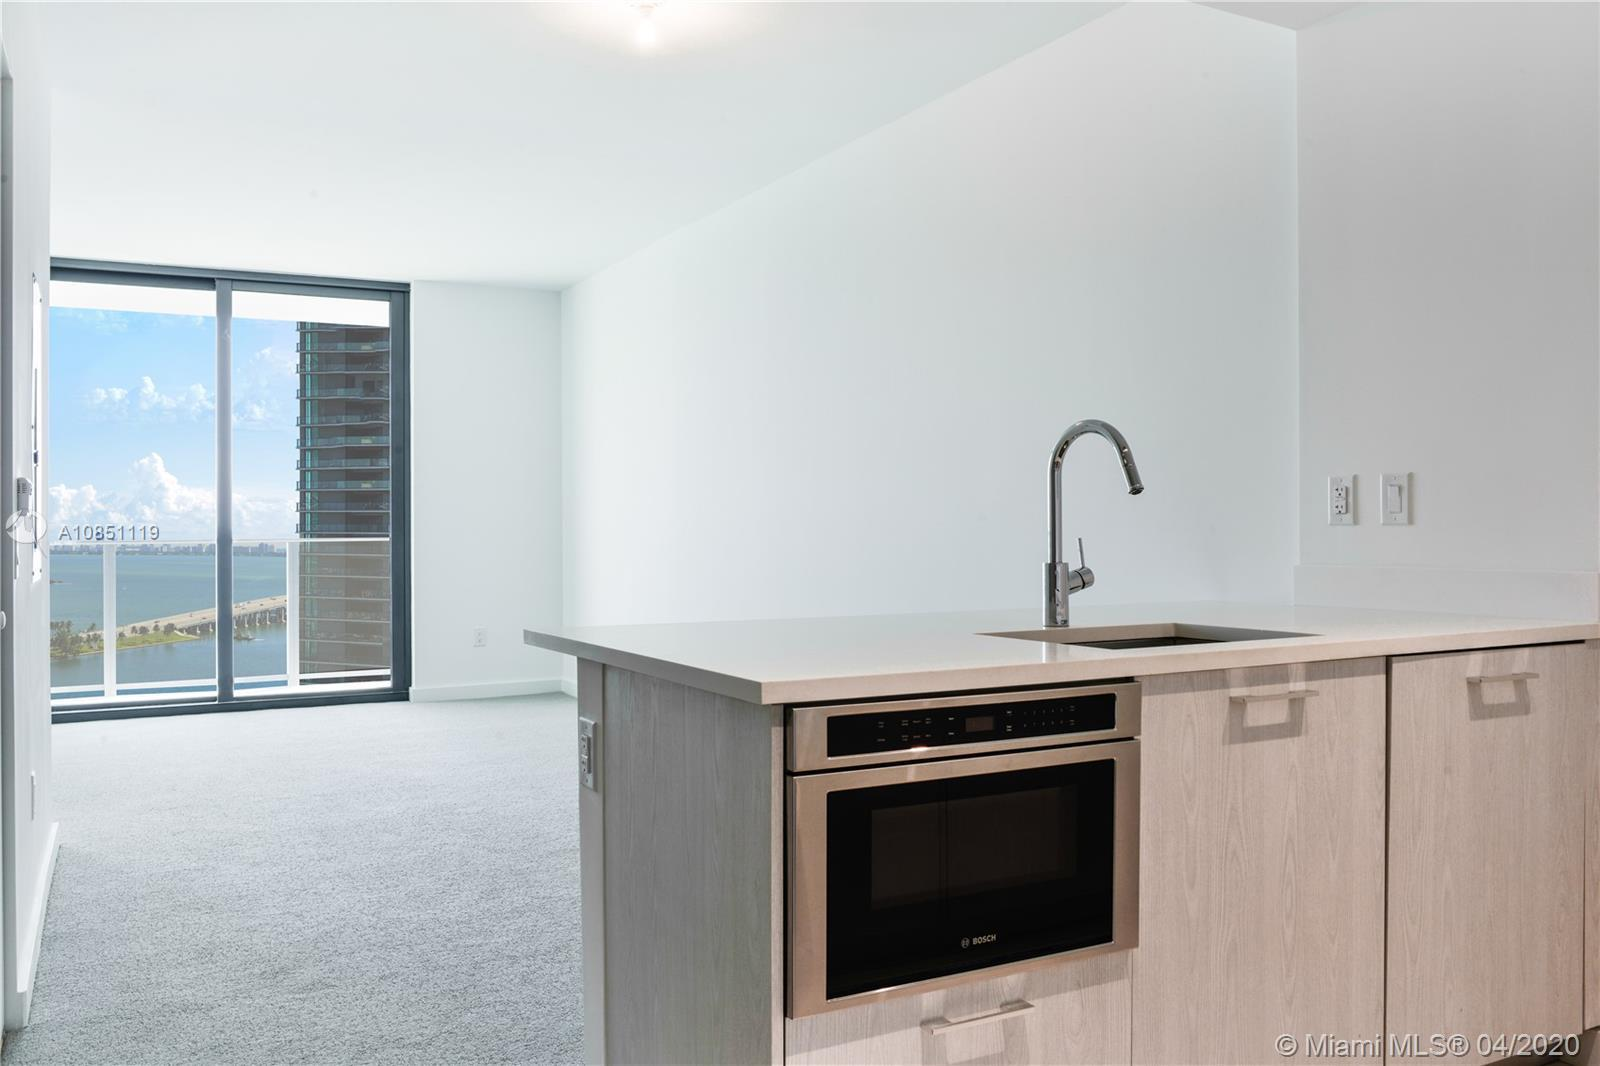 Priced to sell! Investors opportunity! Rented until 10/31/20 for $2,000. Spectacular brand new unit